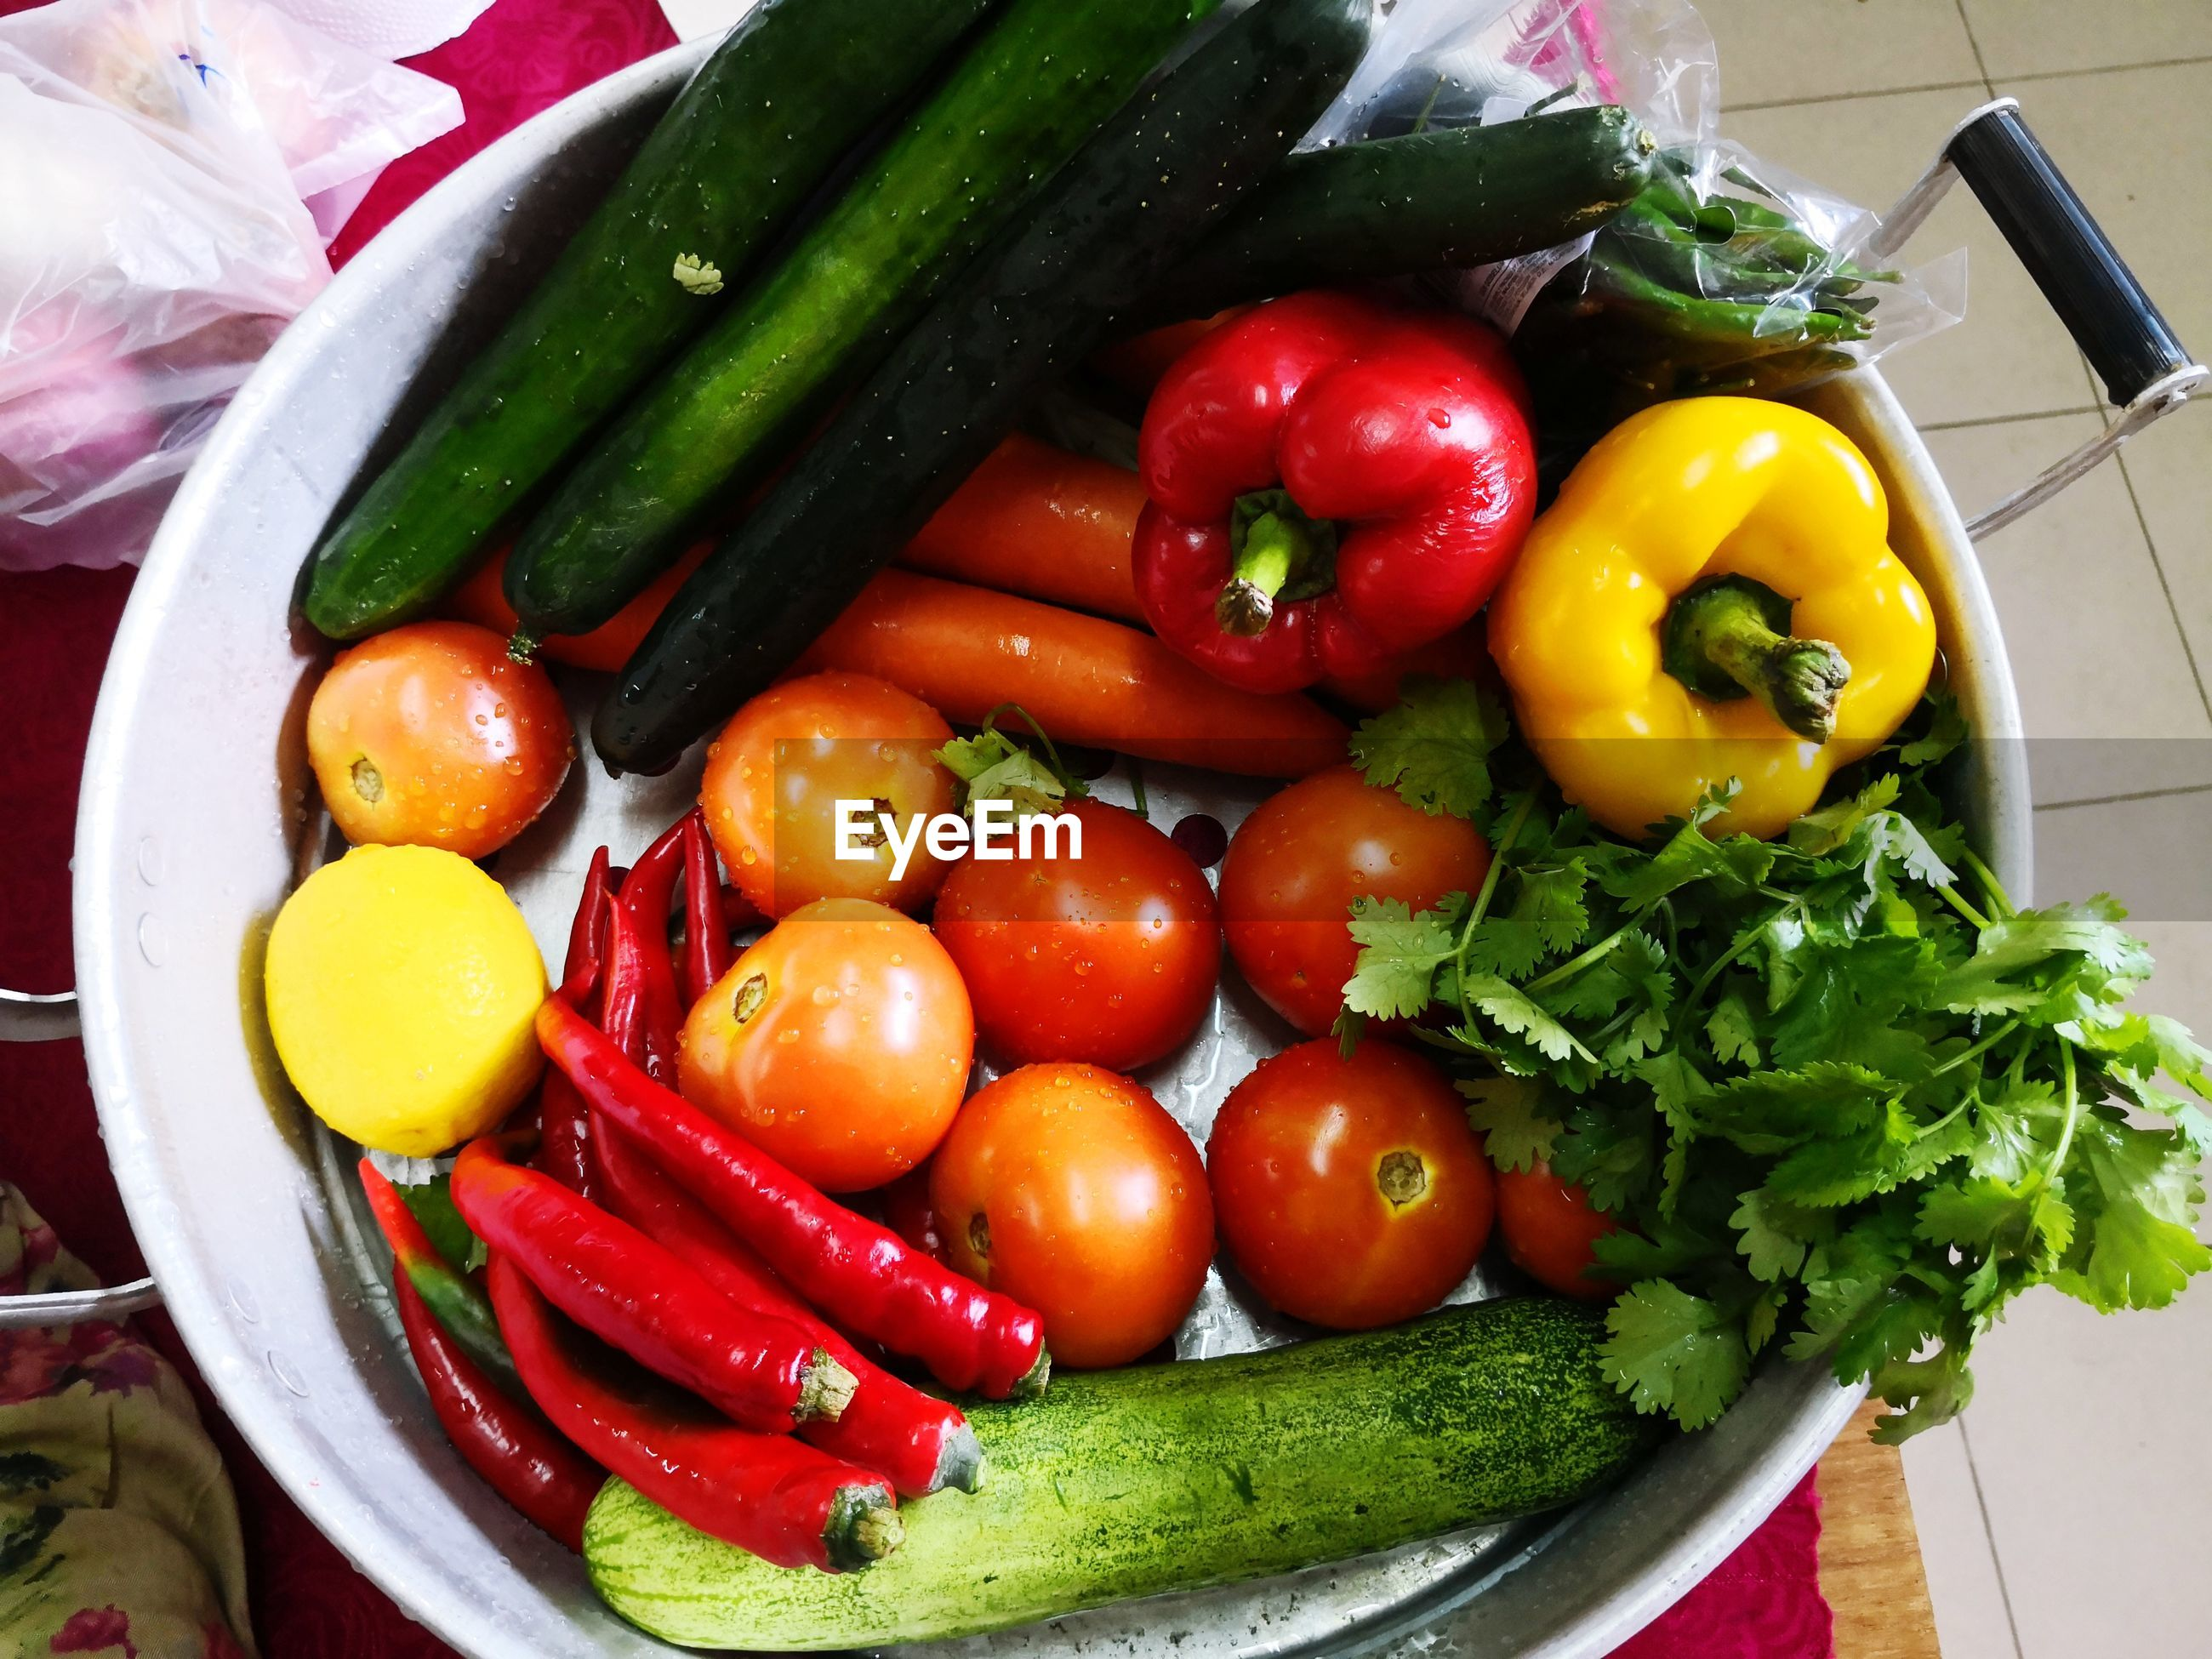 HIGH ANGLE VIEW OF FRUITS AND VEGETABLES IN PLATE